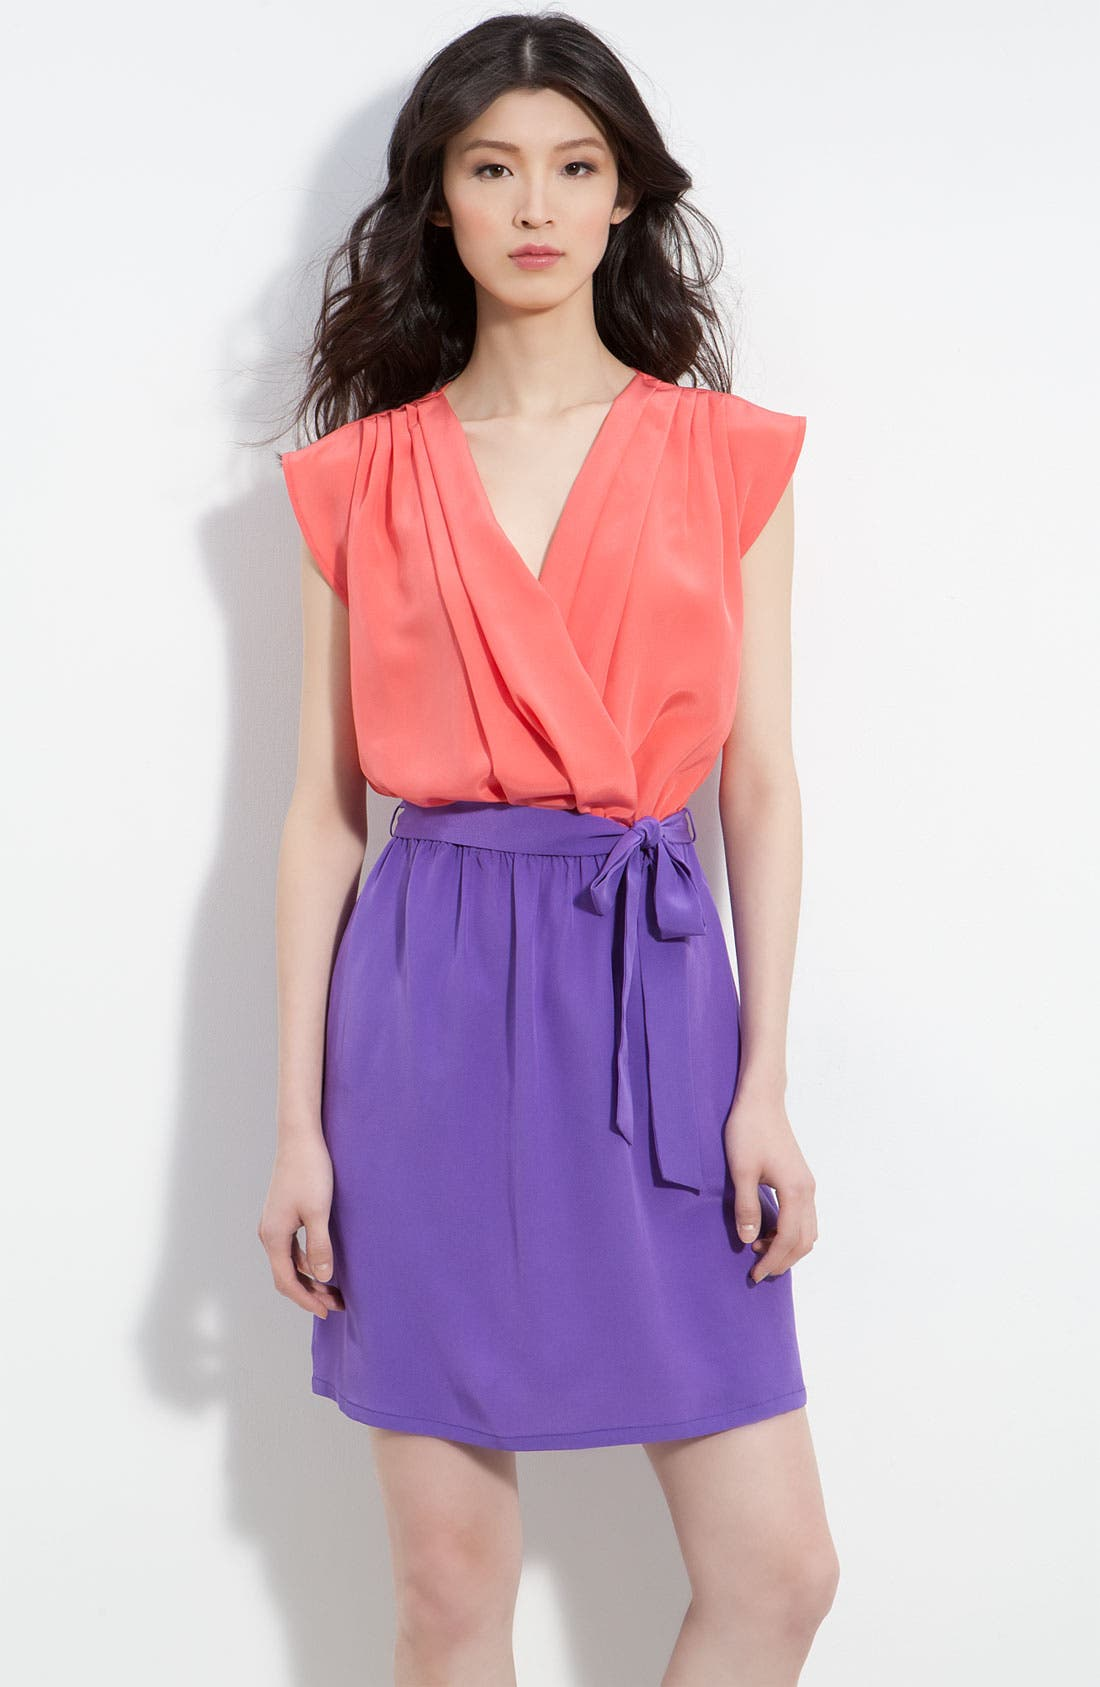 Alternate Image 1 Selected - Charlie Jade 'April' Pleated Surplice Colorblock Silk Dress